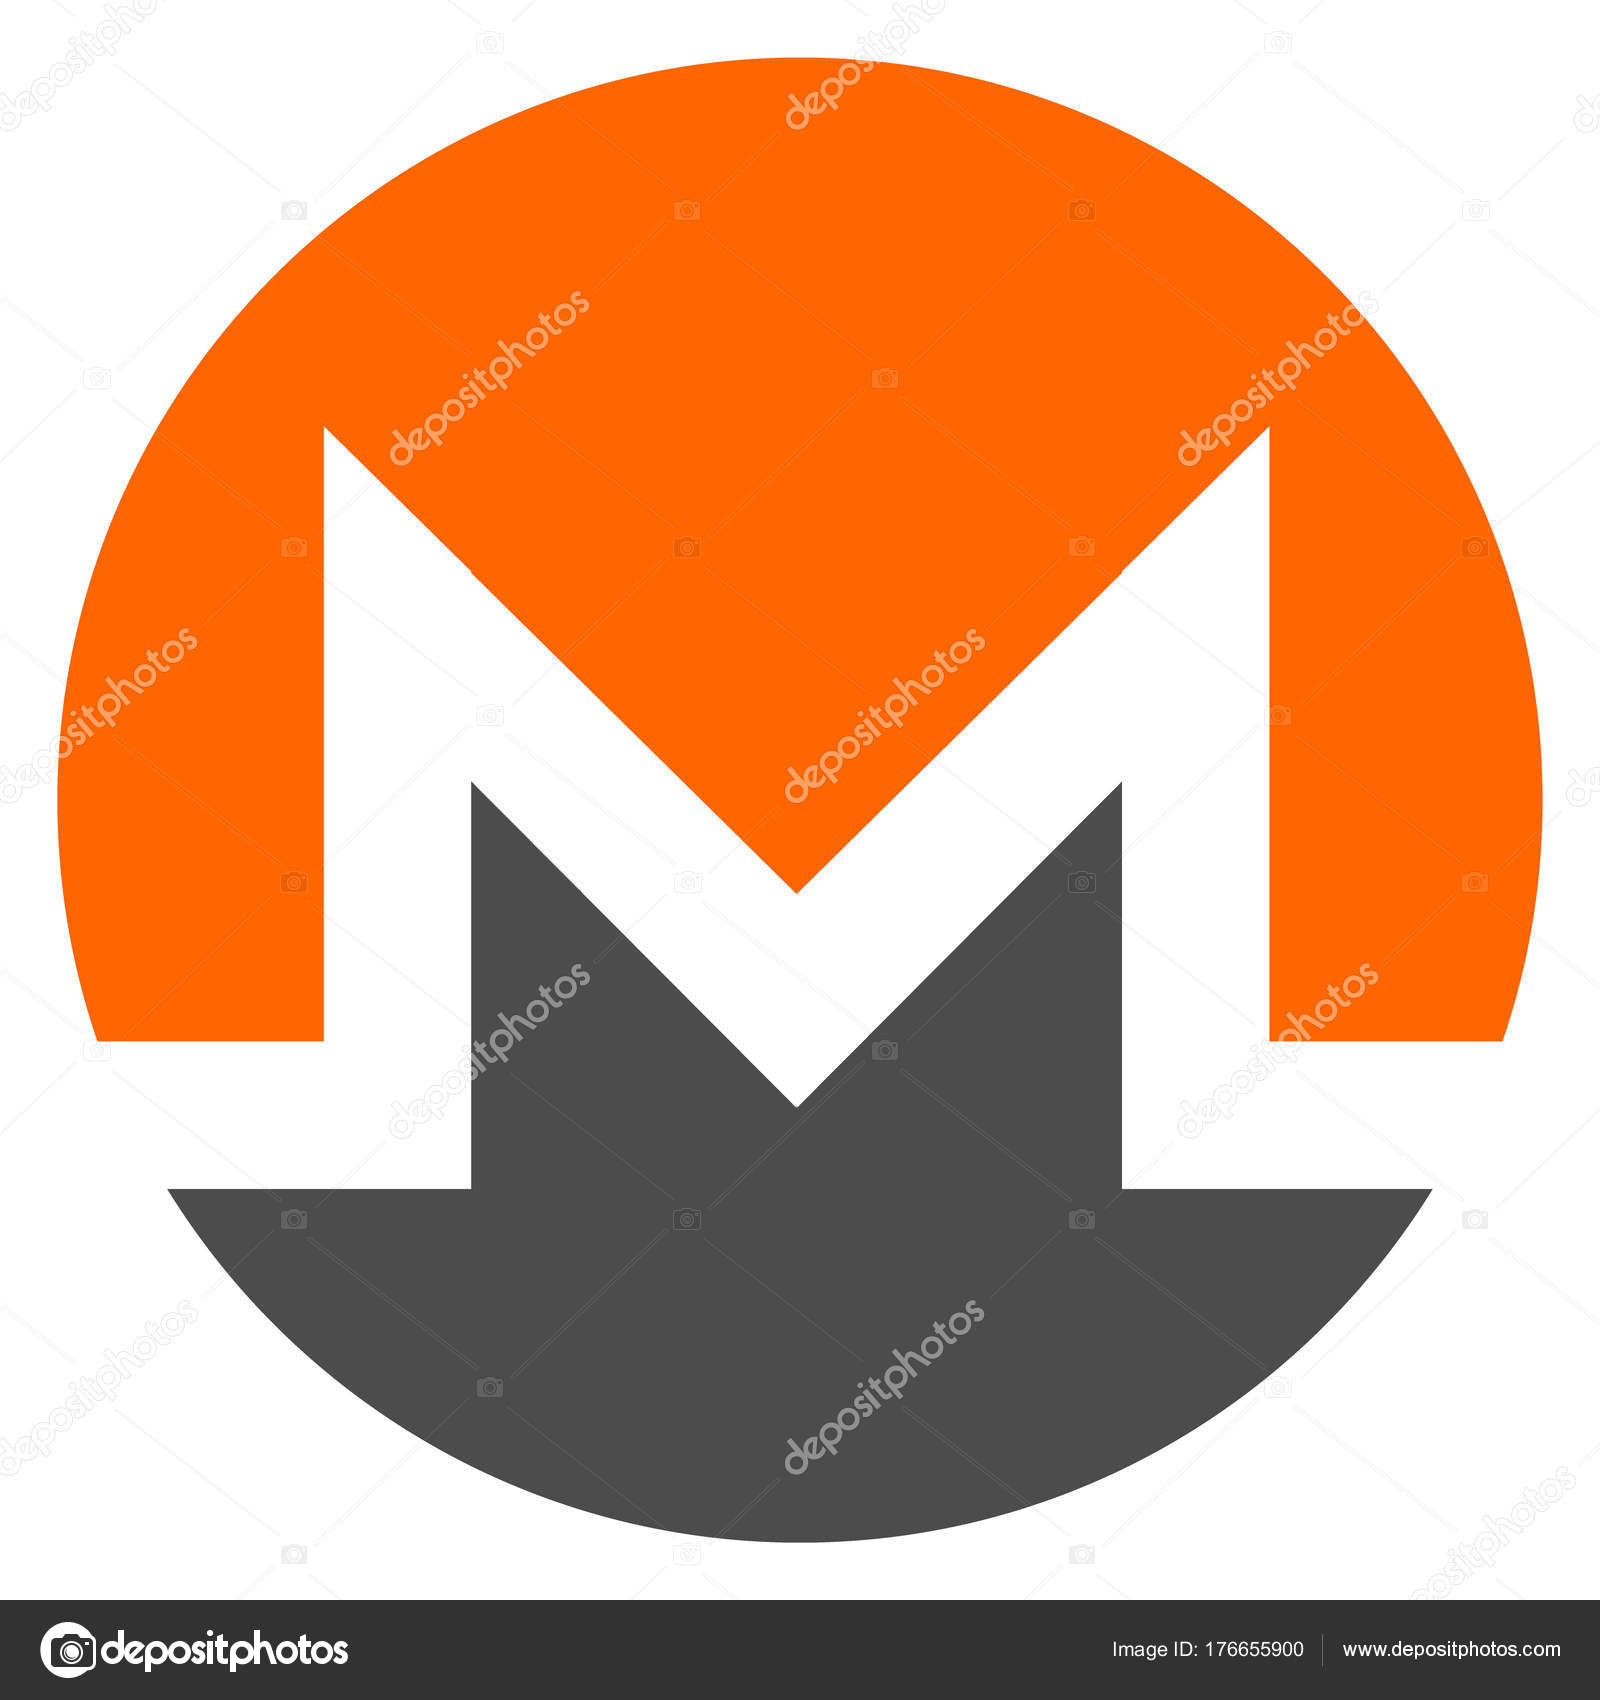 Monero crypto currency stocks awards betting